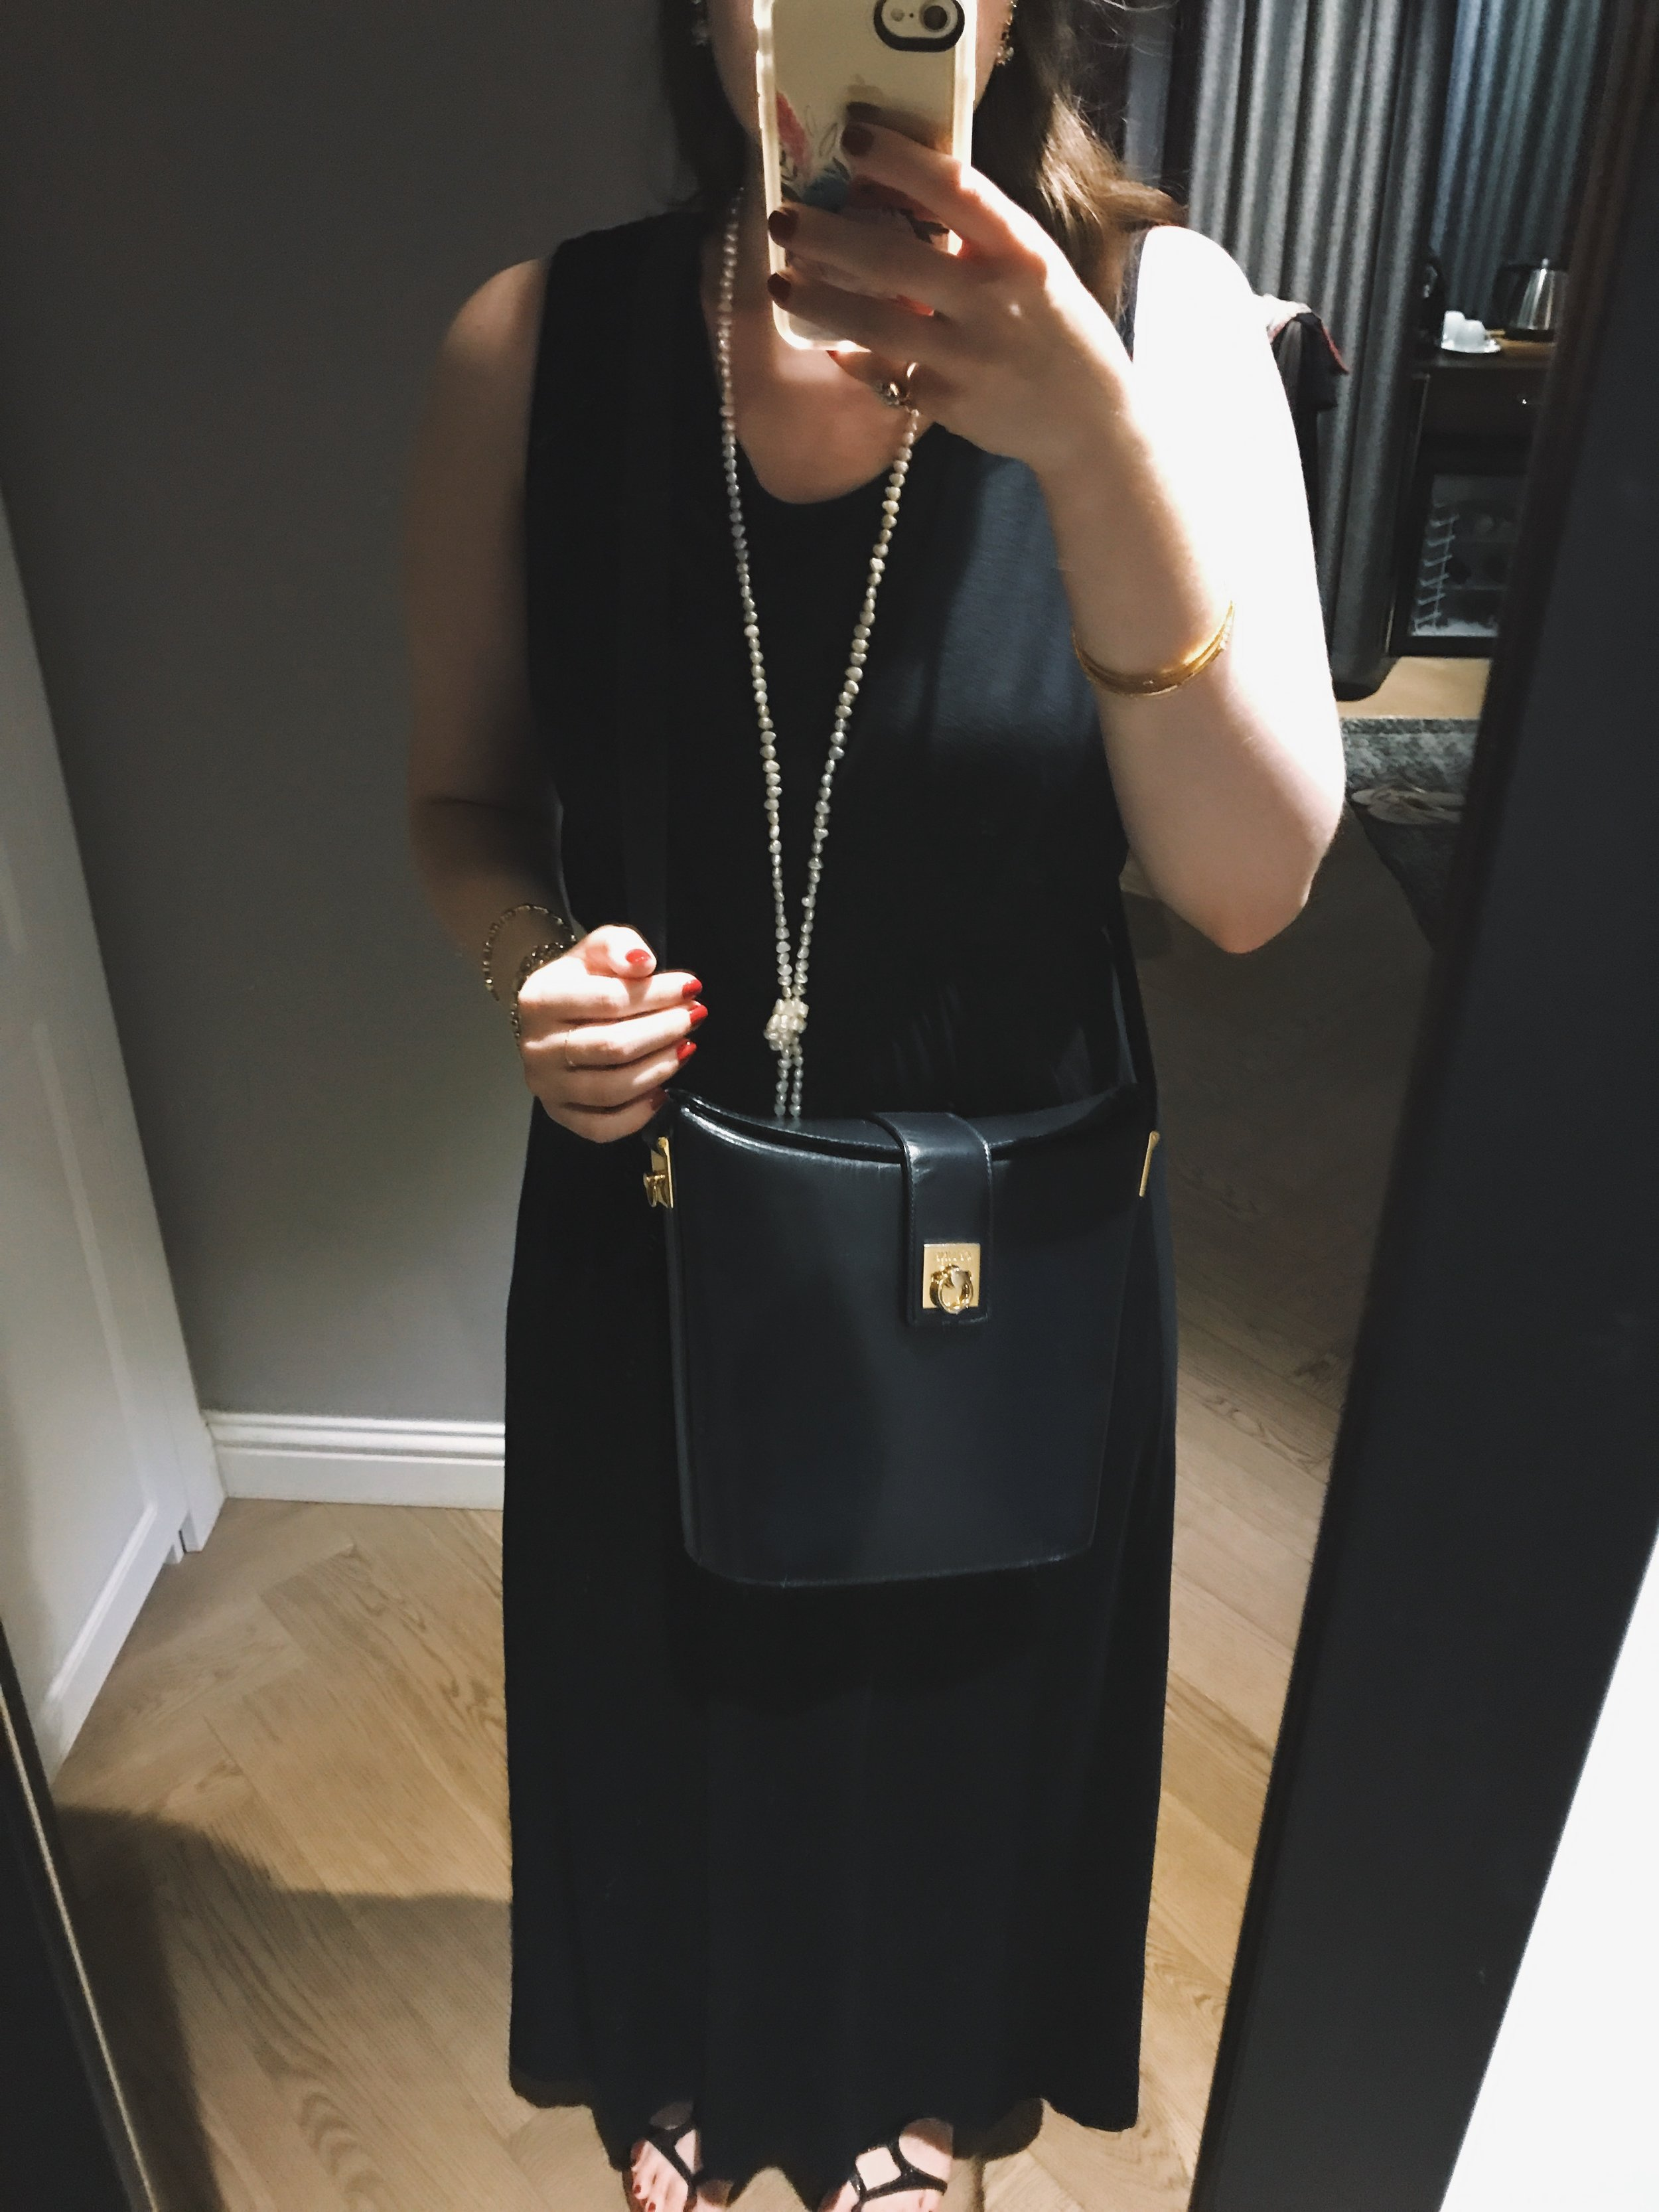 Olivia-Outfit-1.jpg